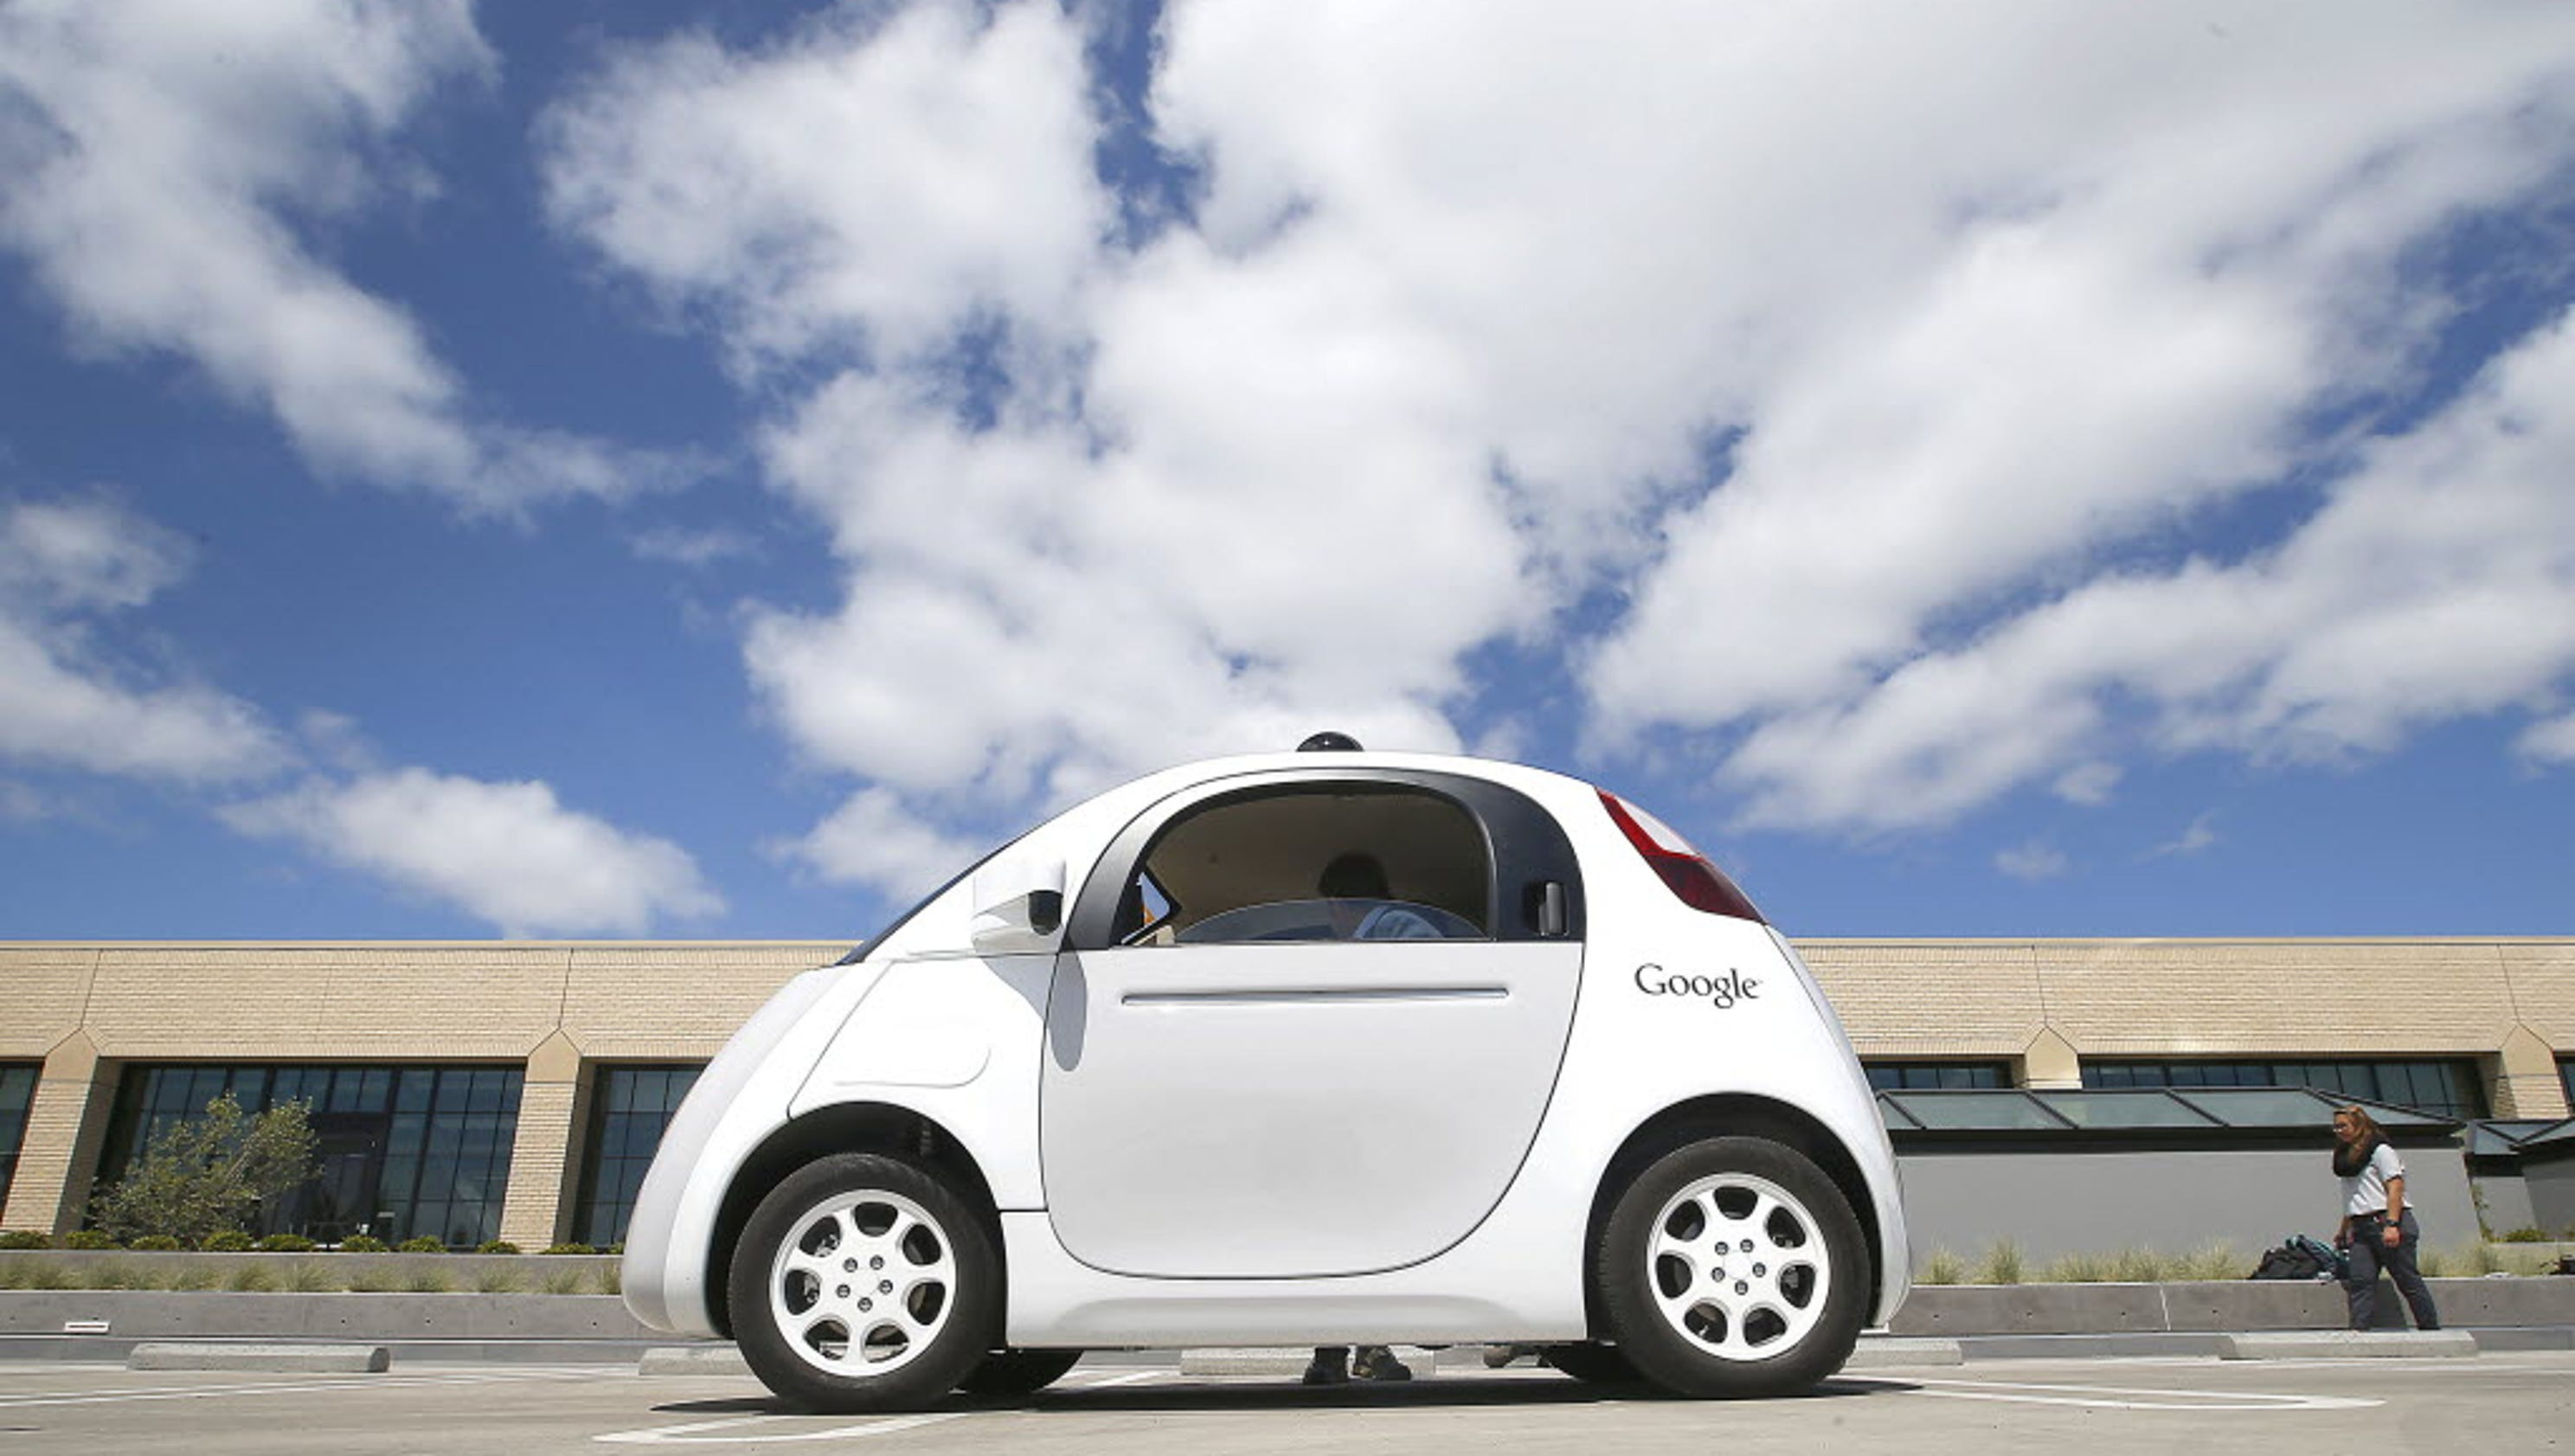 Self driving car advocates Feds should set safety rules not states